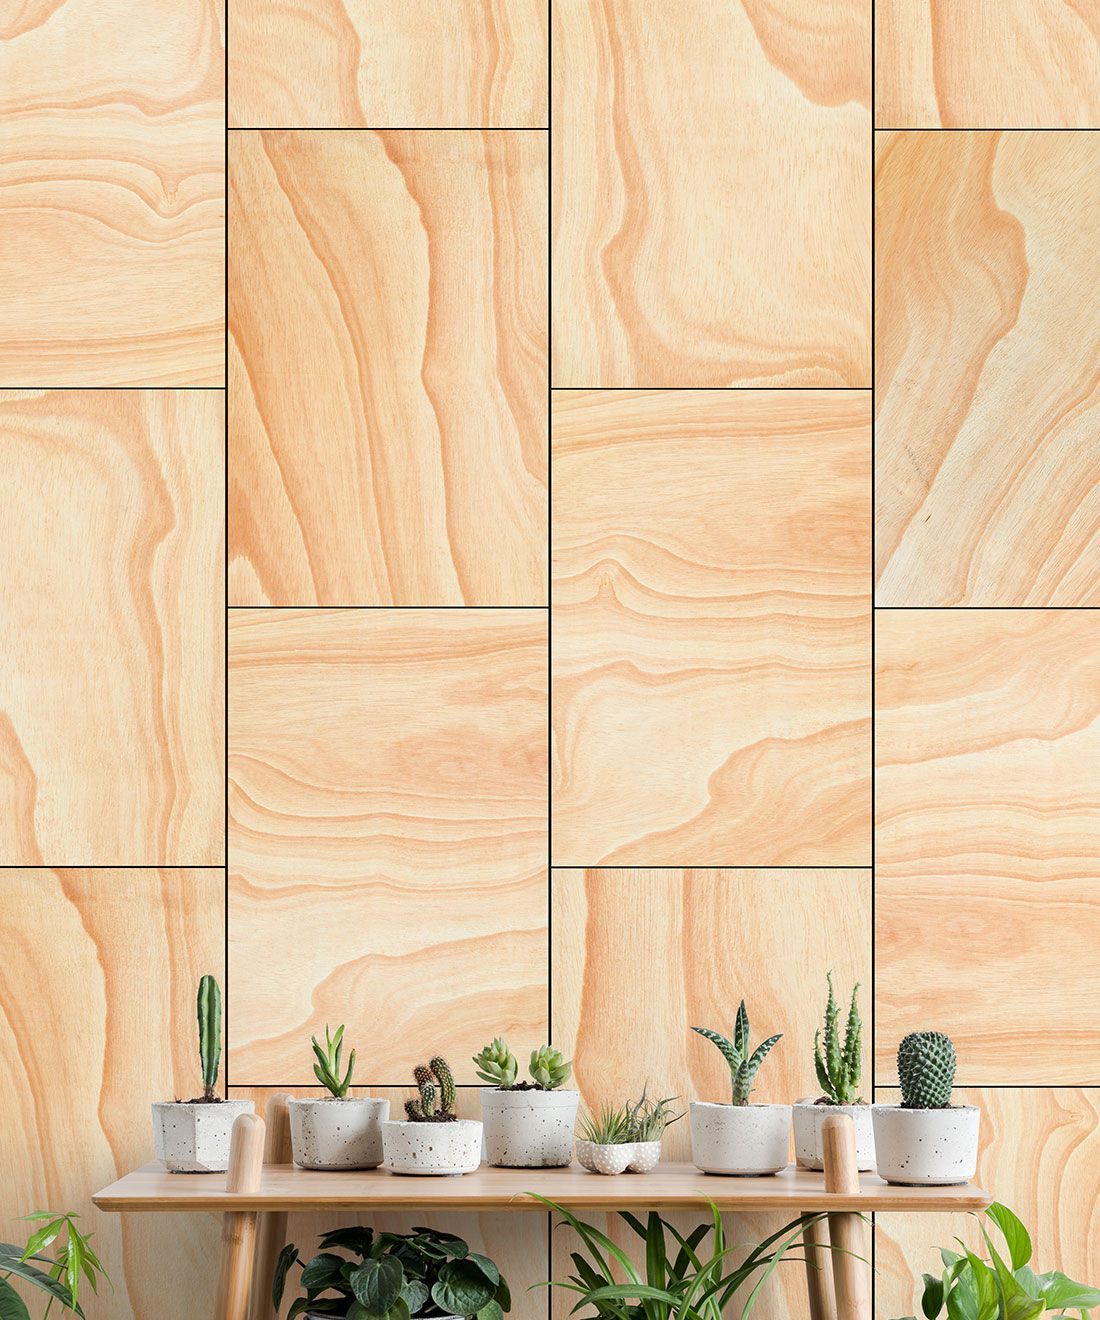 Ply Wood Wallpaper • Light Brown Wallpaper • Wood Grain Wallpaper behind a table with cacti